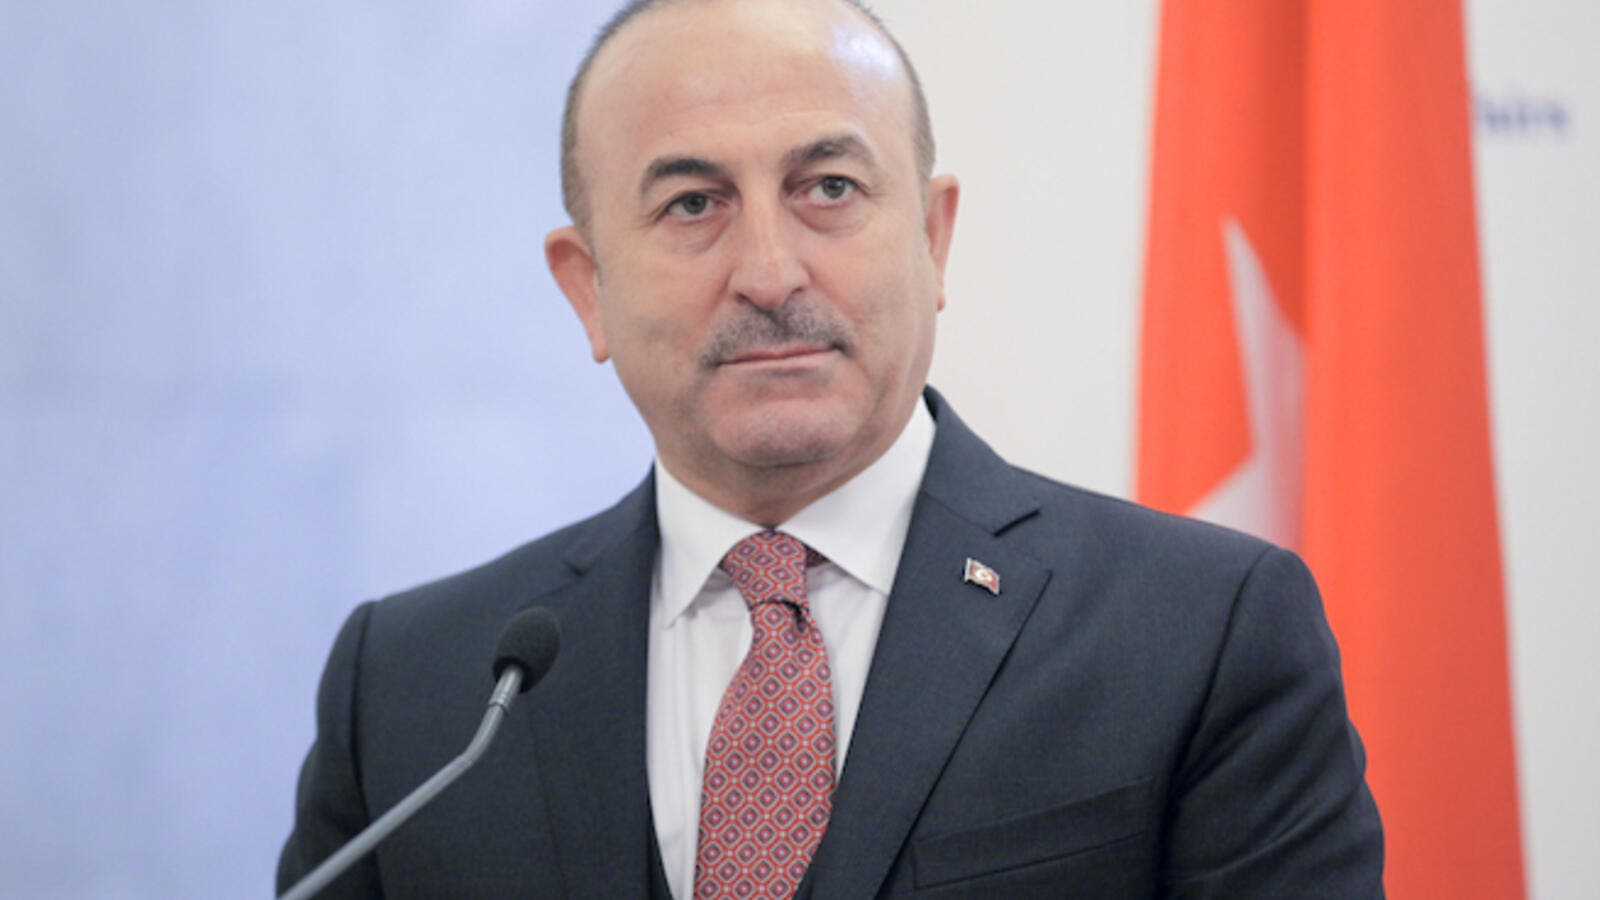 Cavusoglu said President Recep Tayyip Erdogan had previously mentioned that Turkey is taking natural gas from Russia and Iran and if it does not have more options, the country would have to continue taking gas from those two countries. (Shutterstock)